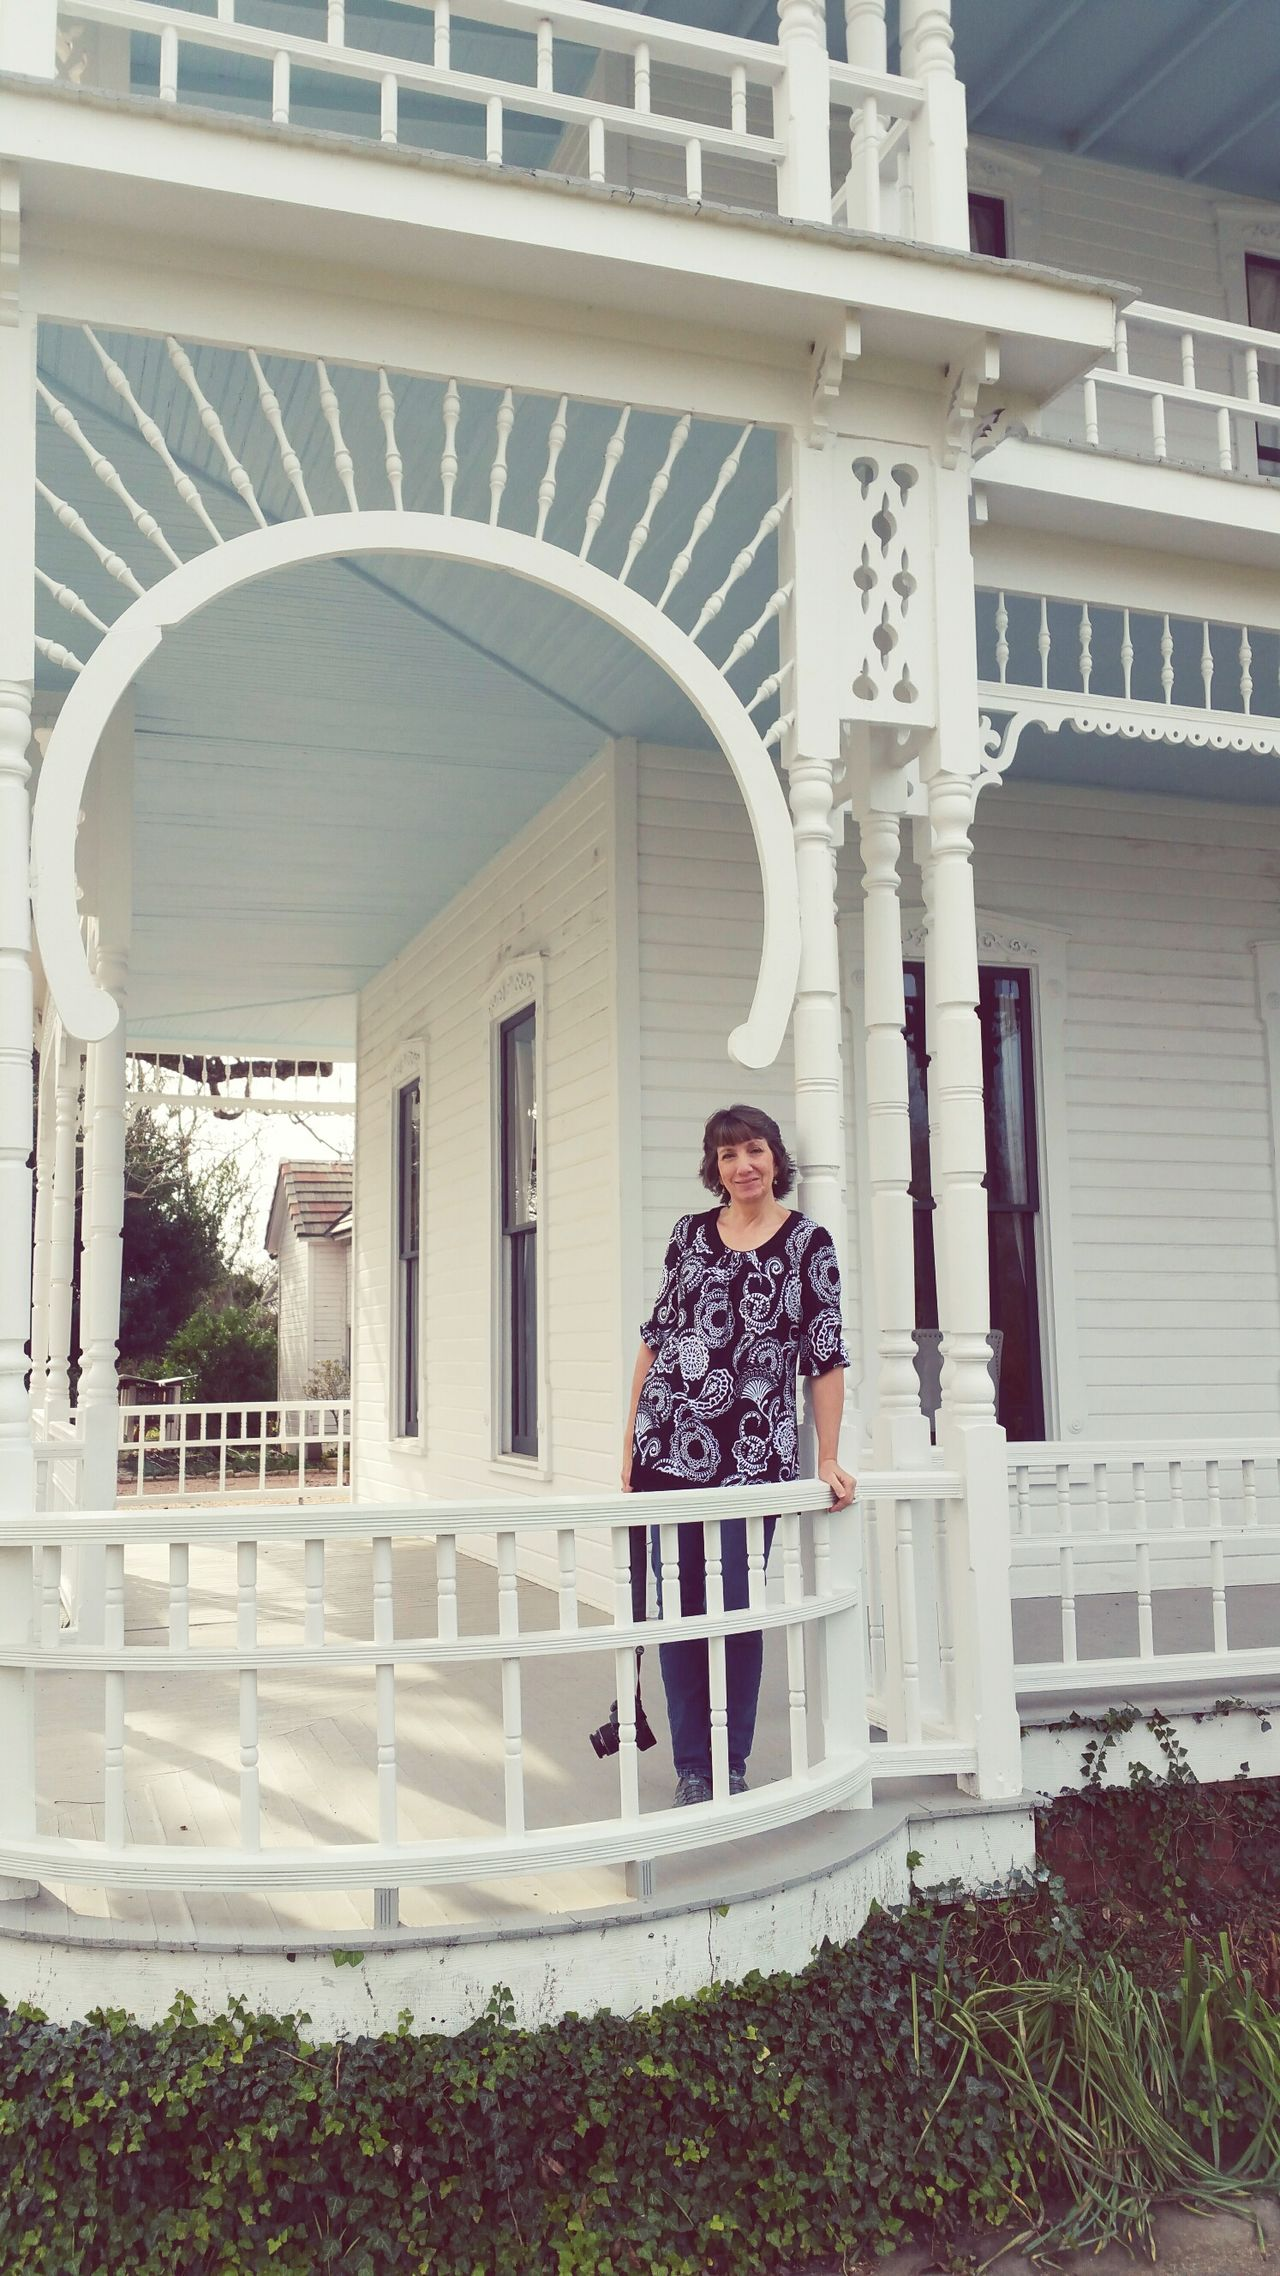 I want this porch 😆 Railing Full Length Architecture One Person People Outdoors Day Young Adult Historical Building Historical Barr Mansion Texas Women